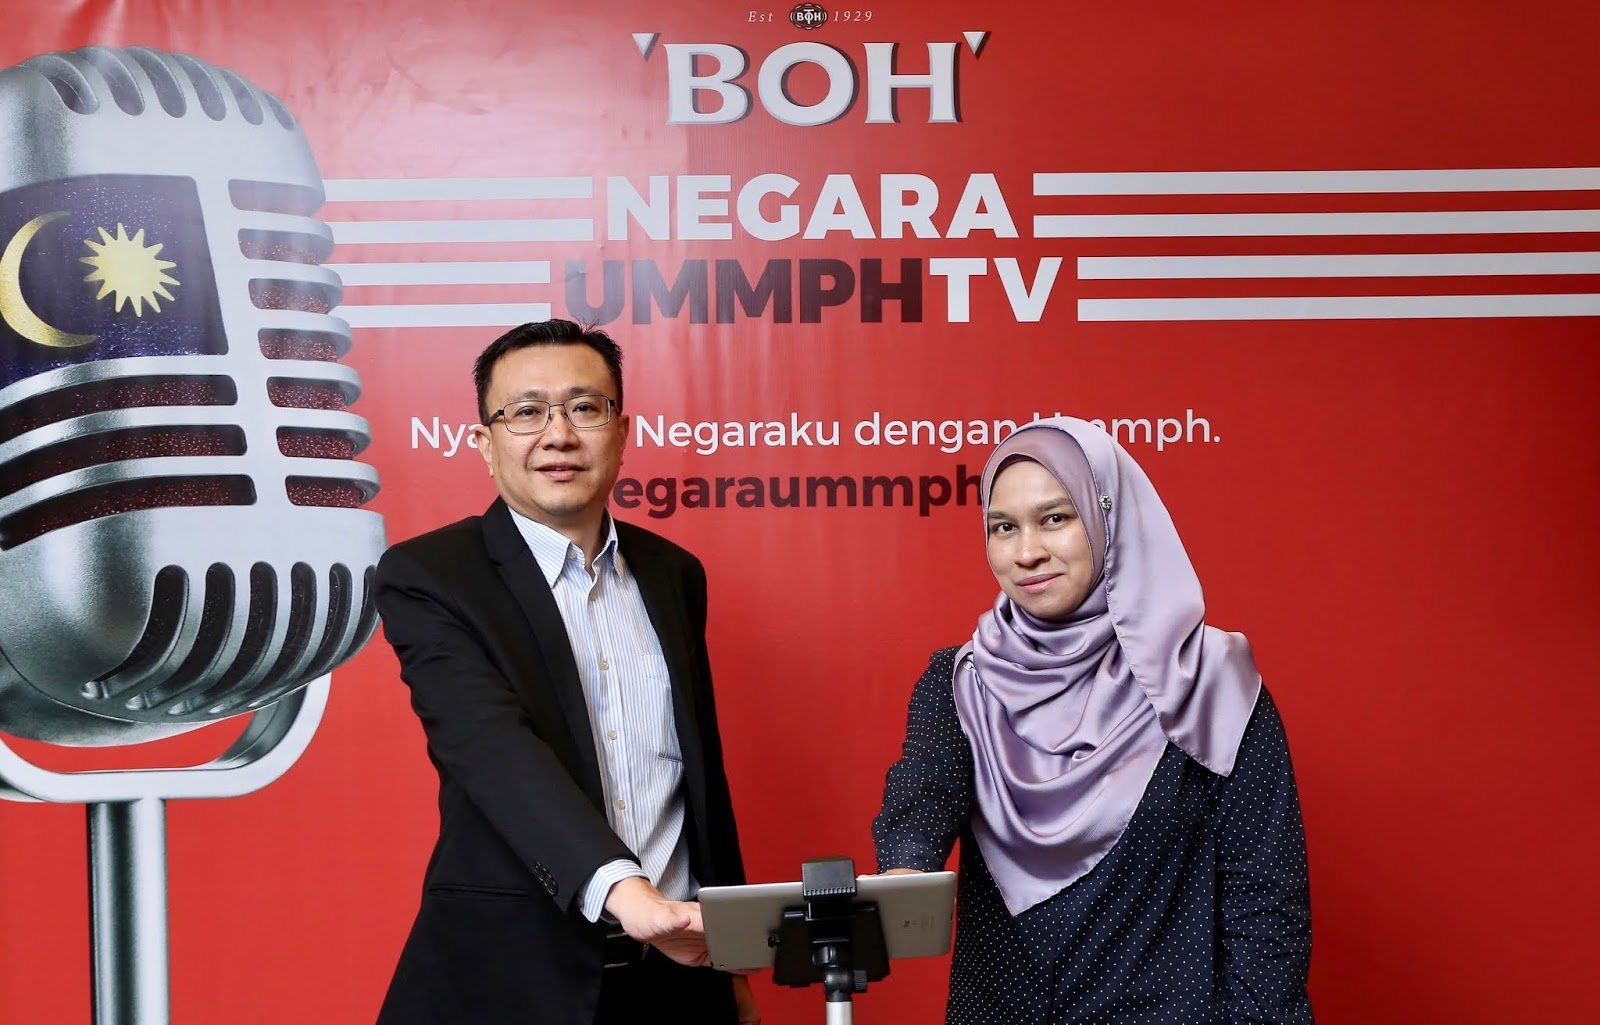 BOH LAUNCHES NEGARAUMMPH TV FOR NATIONAL DAY